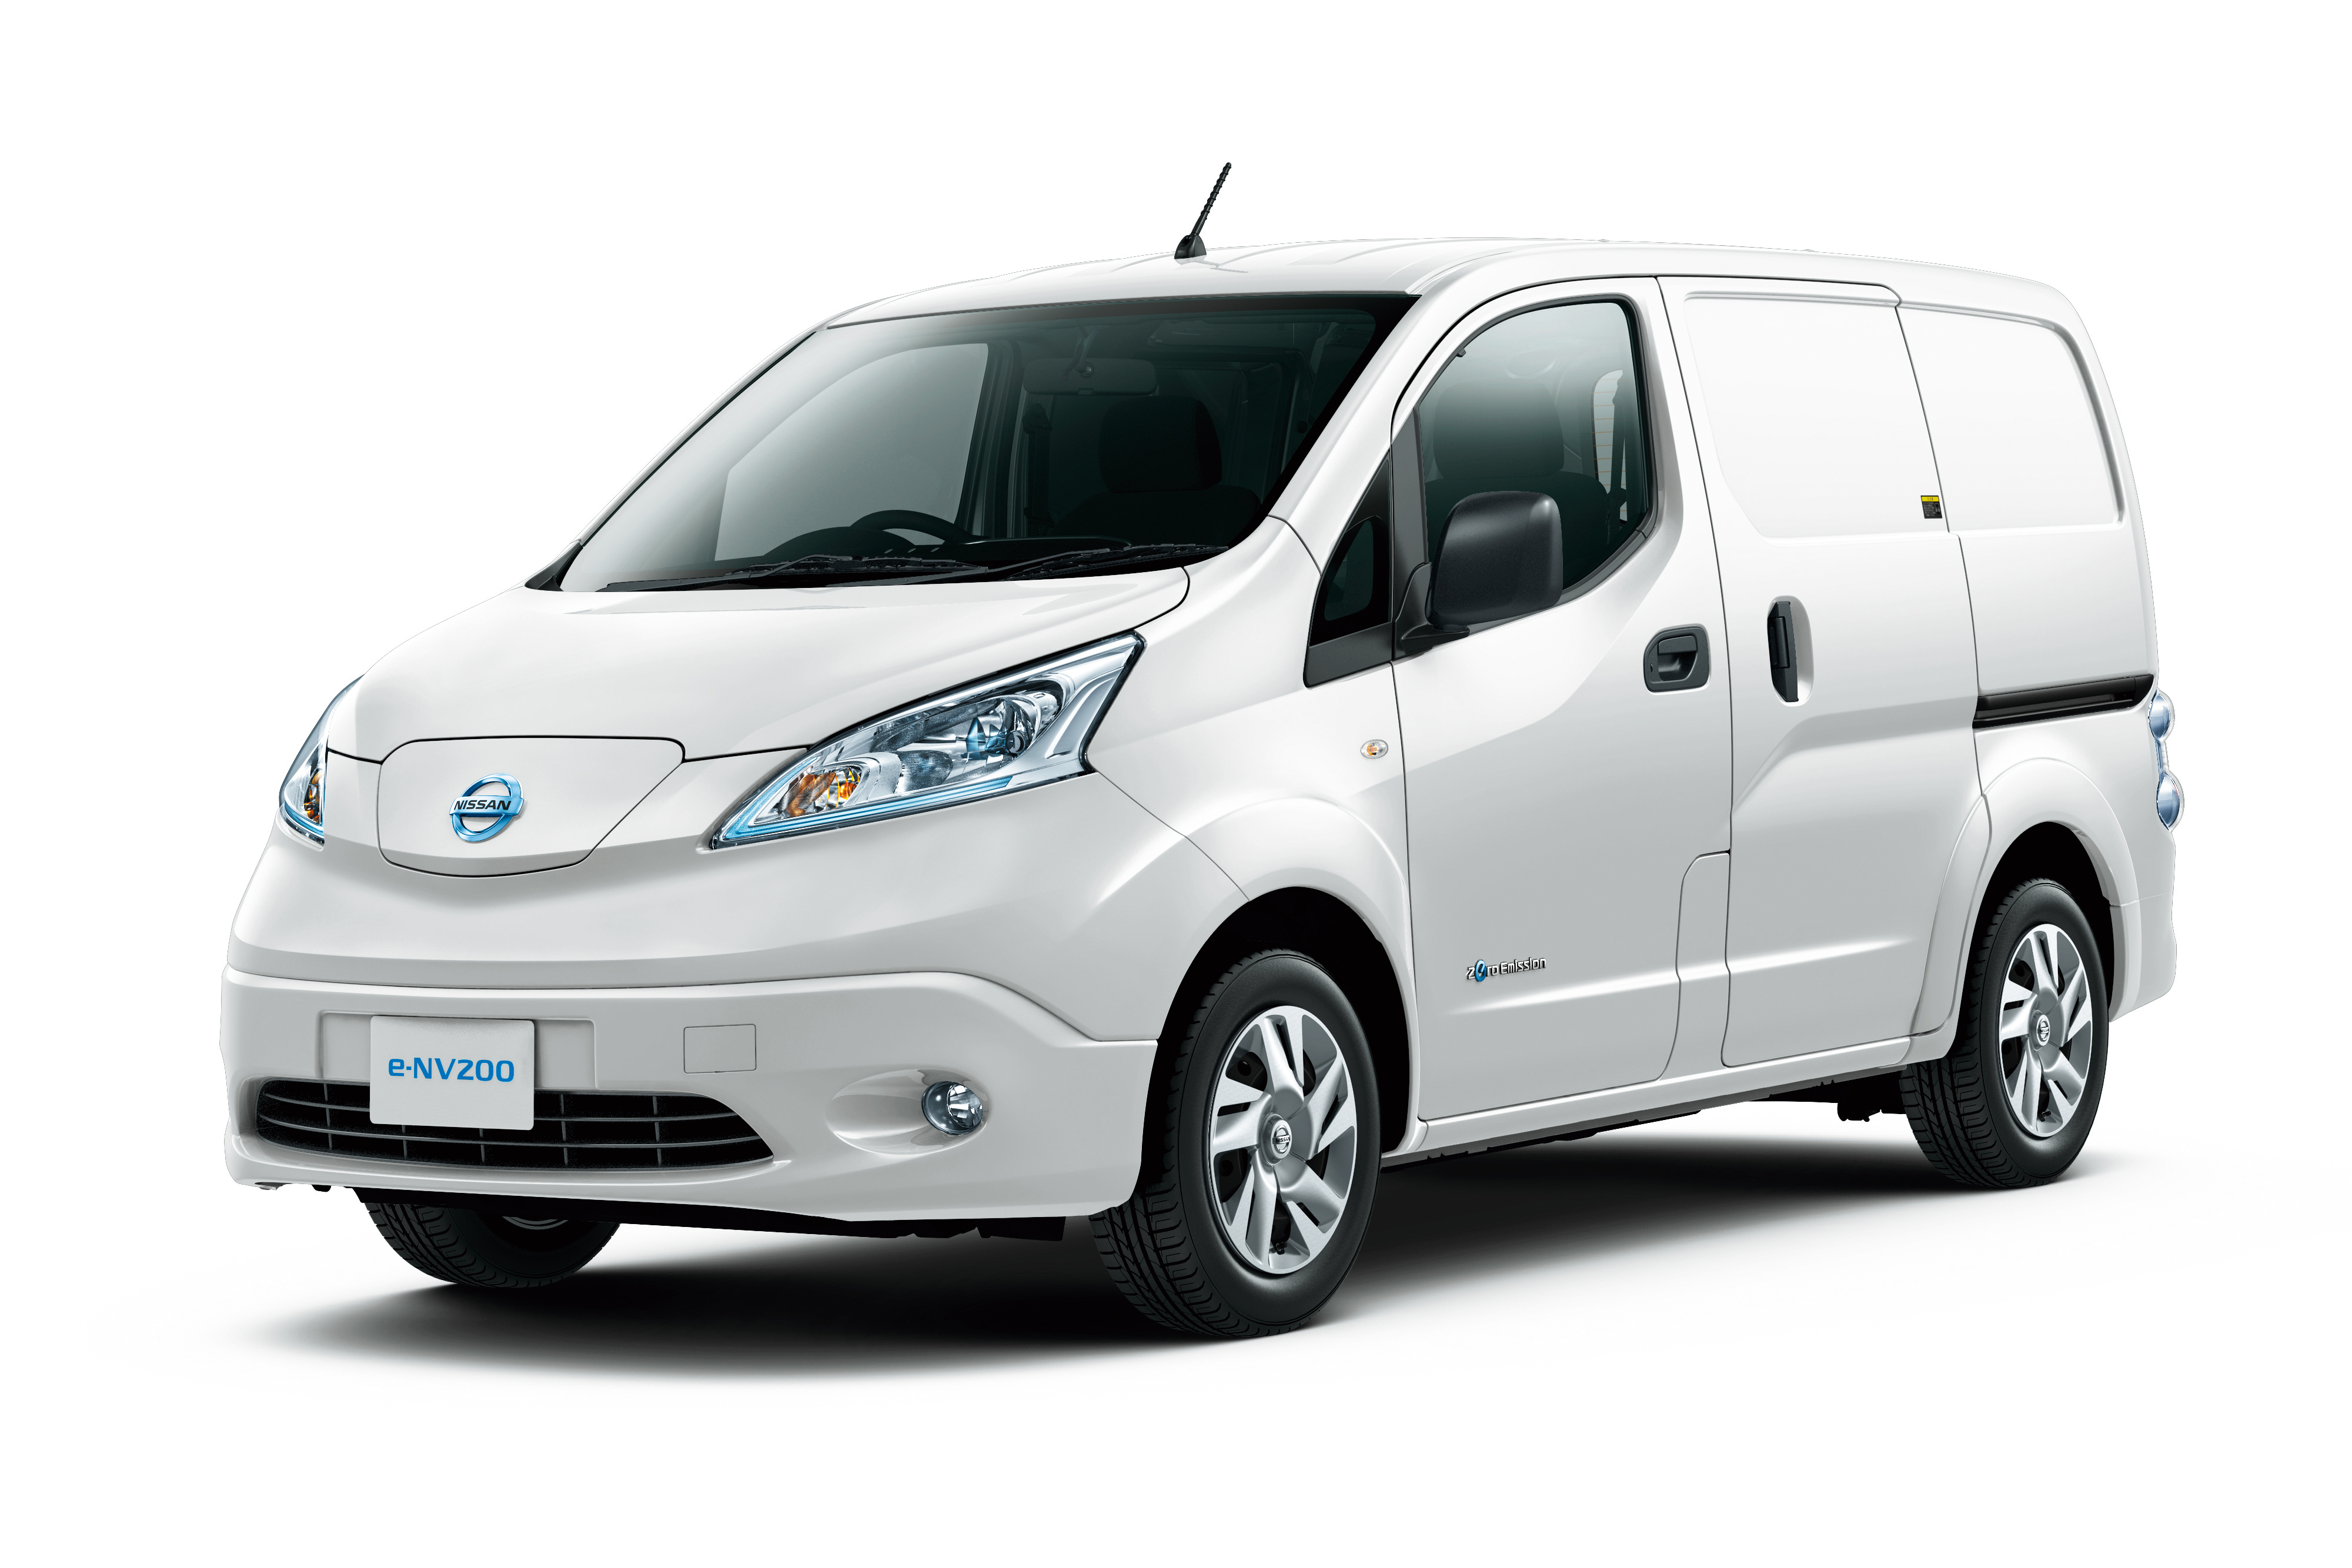 Nissan e-NV200 (Photo: Business Wire)